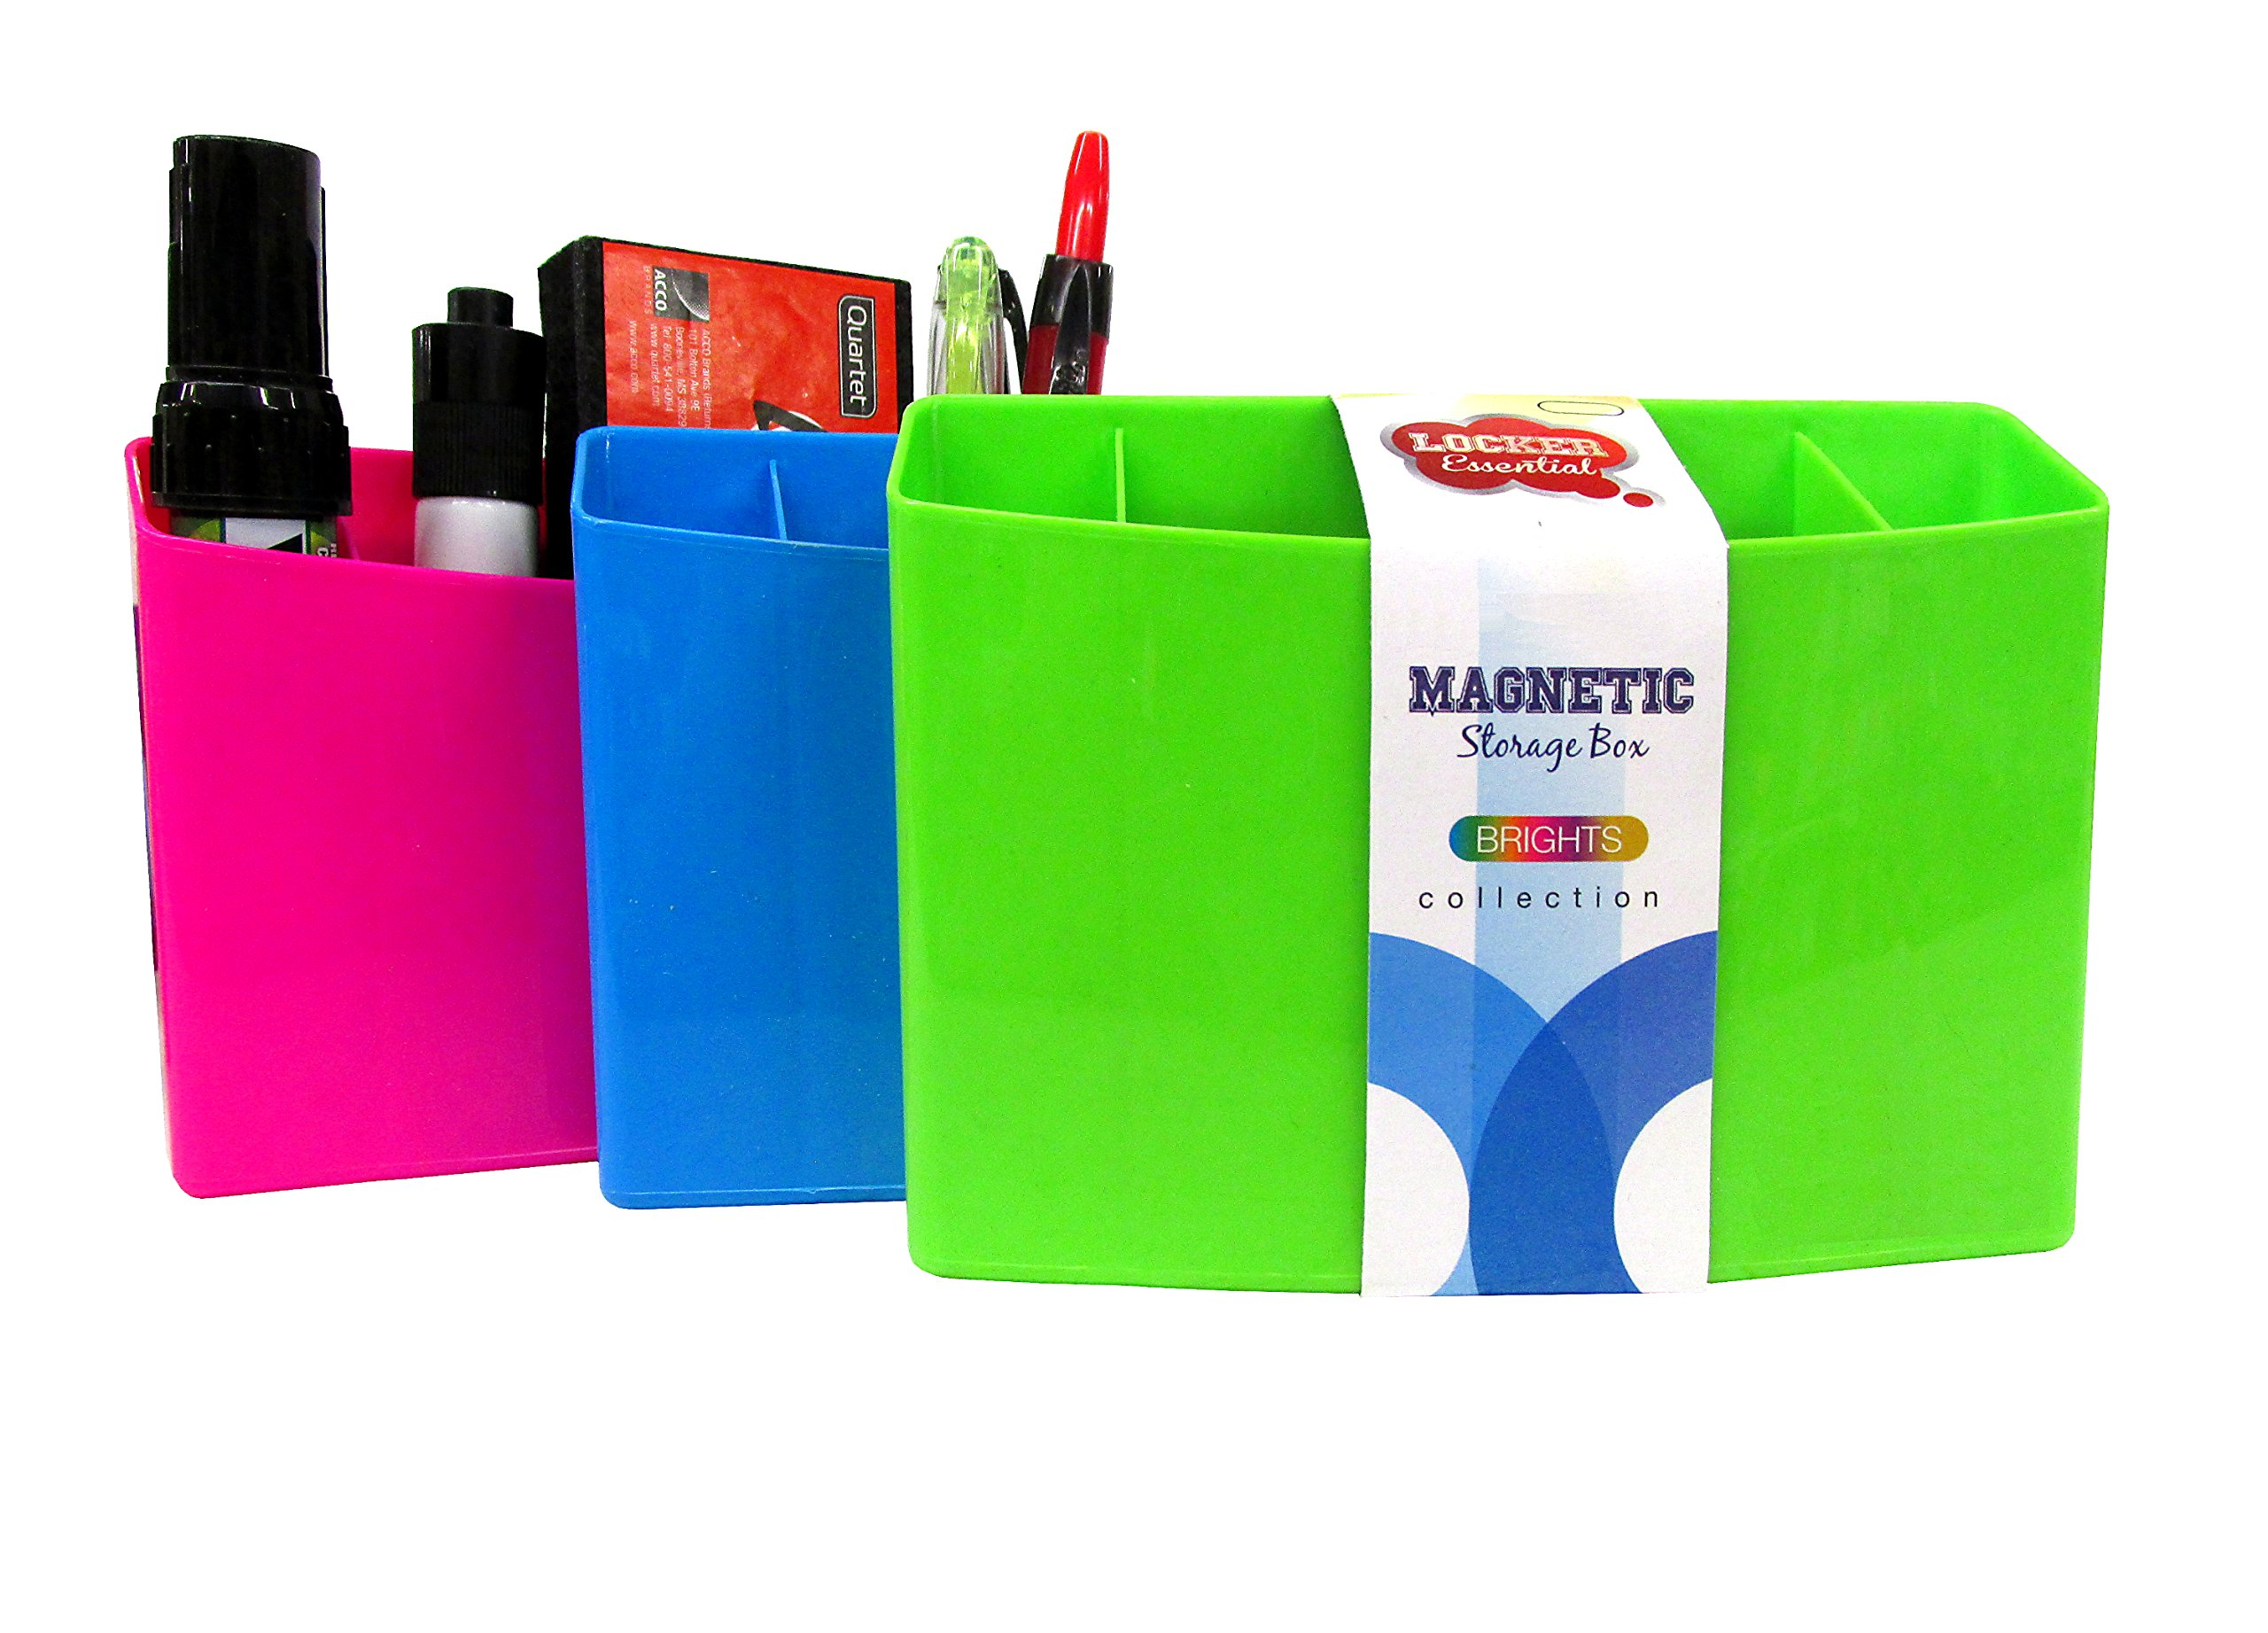 3 Section Magnetic Organizer / Locker Organizer - Pencil, Pen, Dry Erase Accessory Holder - Dimensions: Approximately 4'' x 5.5'' x 1.5'' (3-Pack, Colors Will Vary)